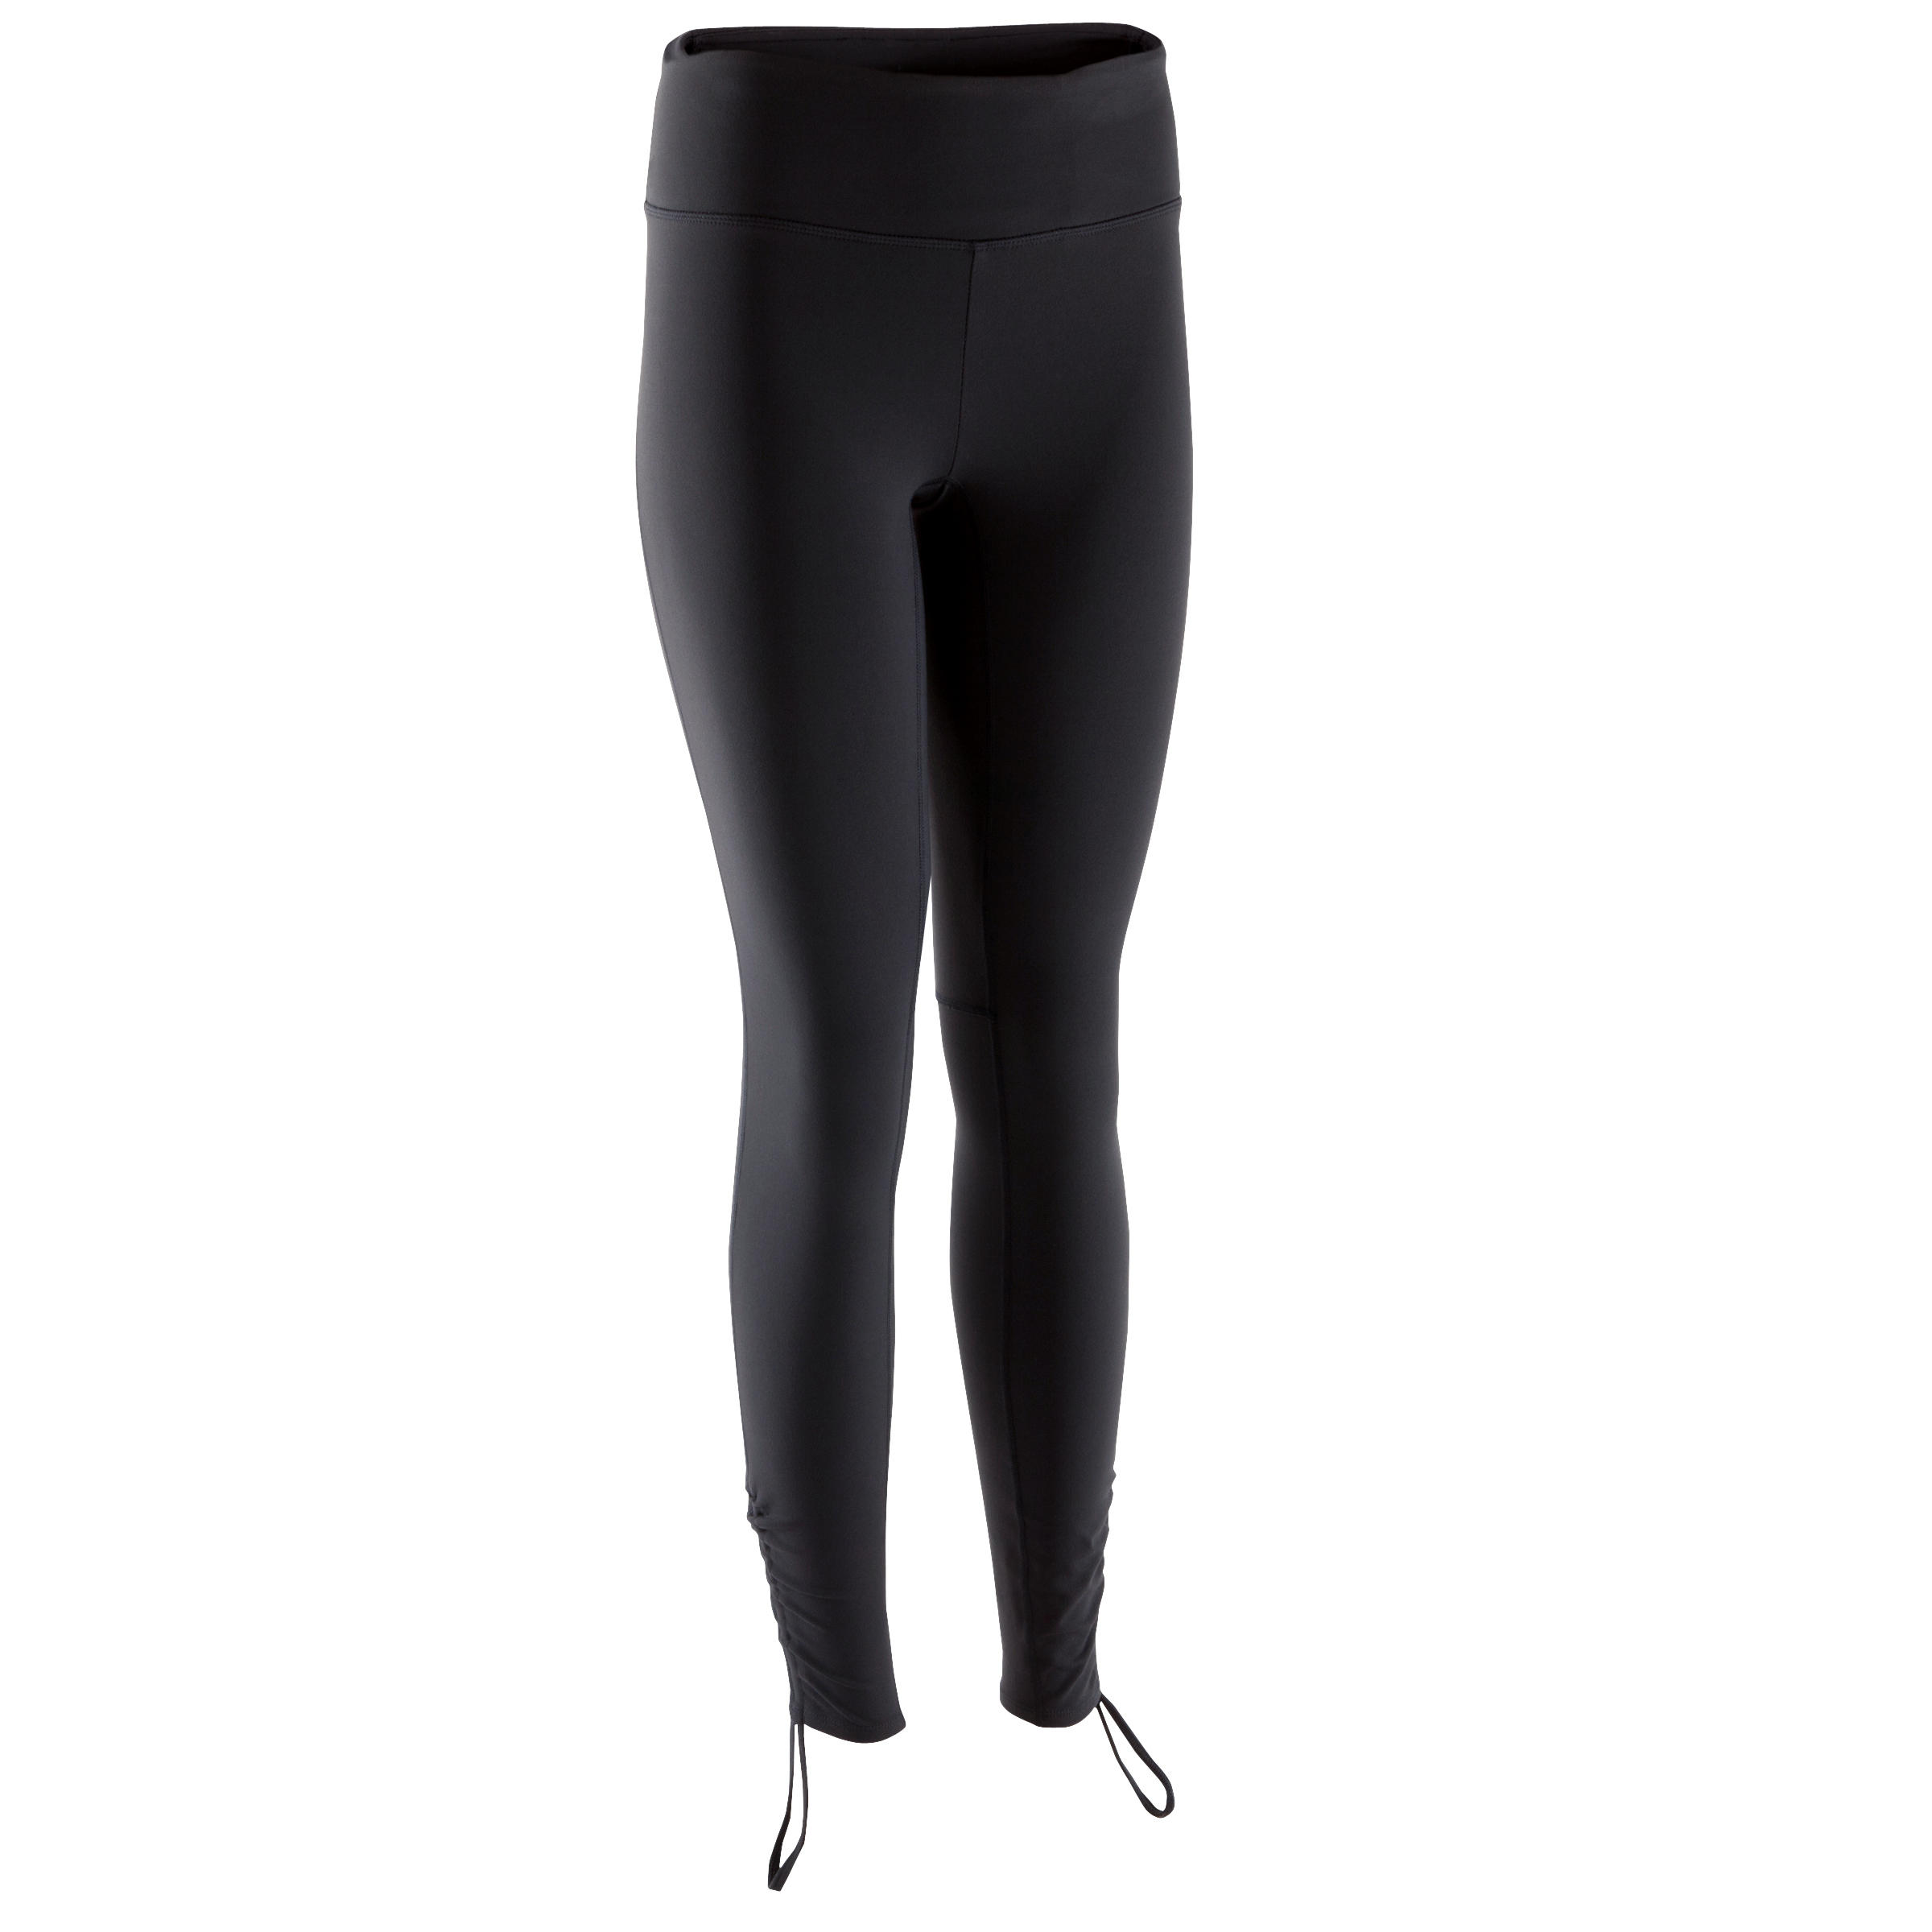 Yoga+ Women's Breathable Leggings - Black